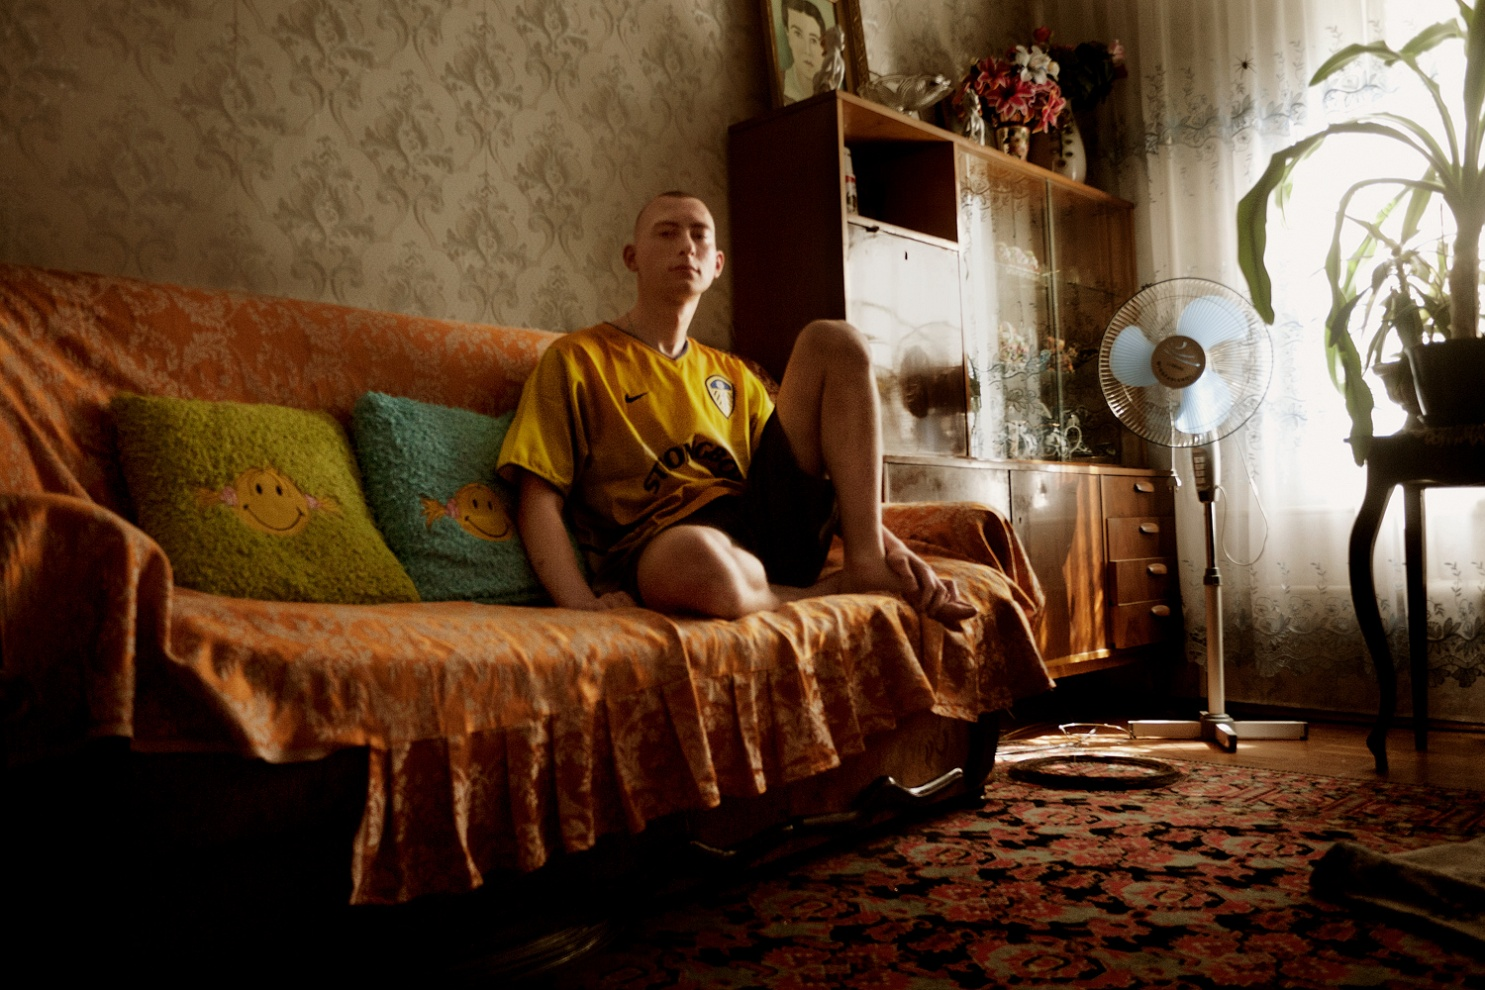 Uzbekistan; Tashkent; 2011; 